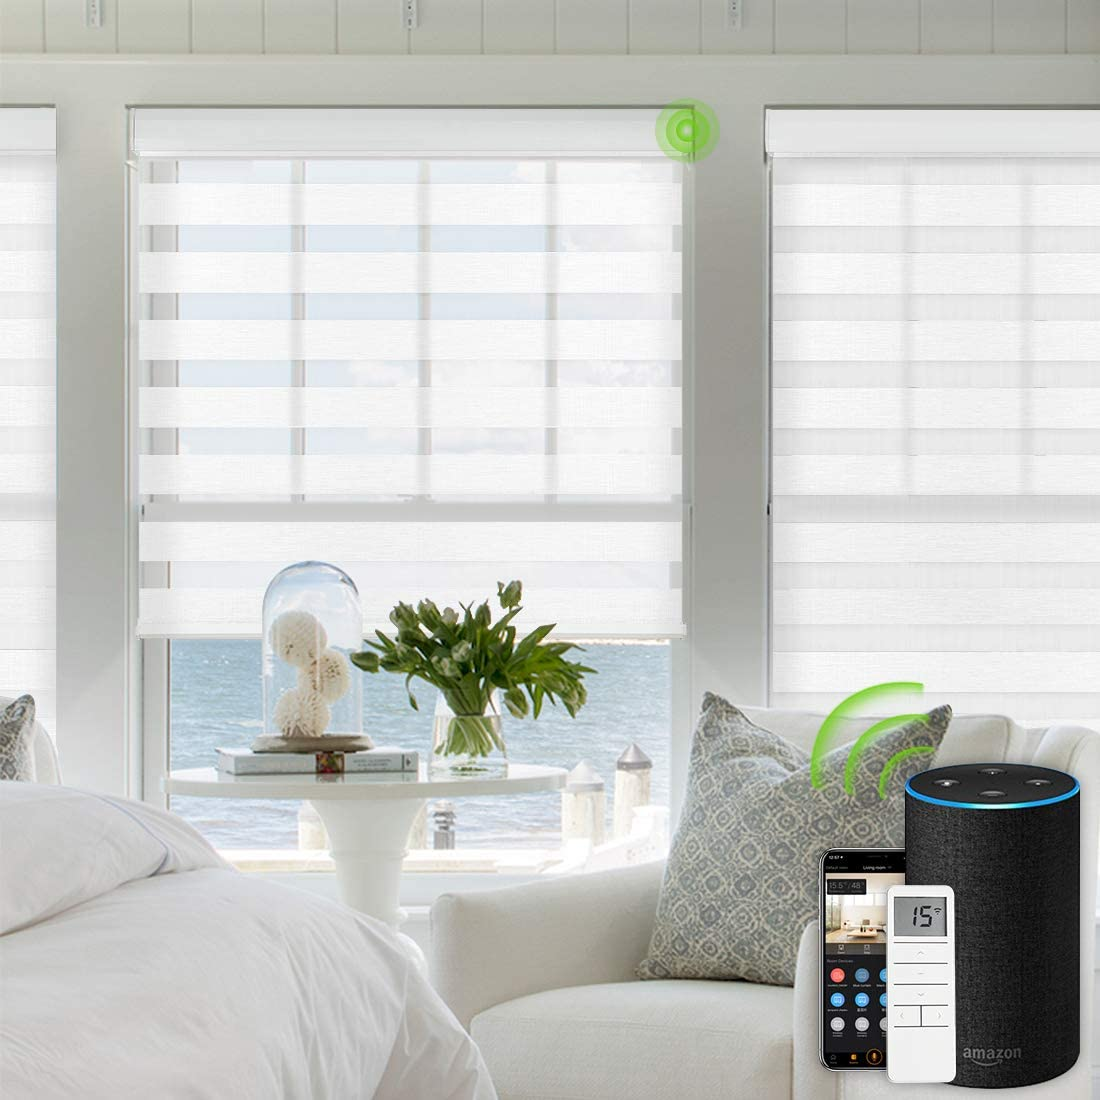 Yoolax Motorized Zebra Blinds Capable with Alexa Siri Rechargeable Battery Motor Dual Layer Sheer and Privacy Light Control Automatic Day and Night Shades White